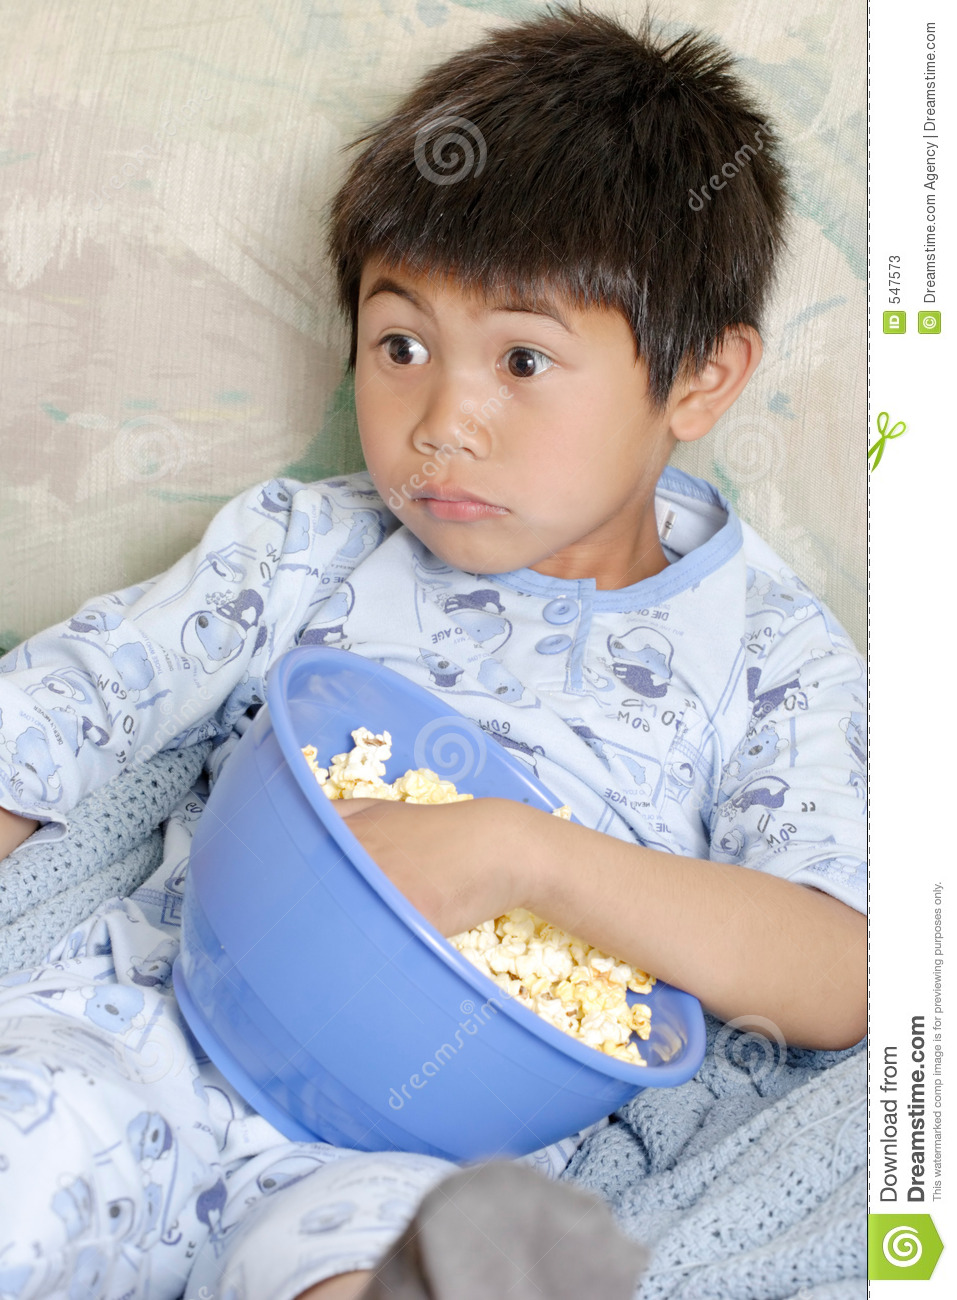 Kid watching a scary movie